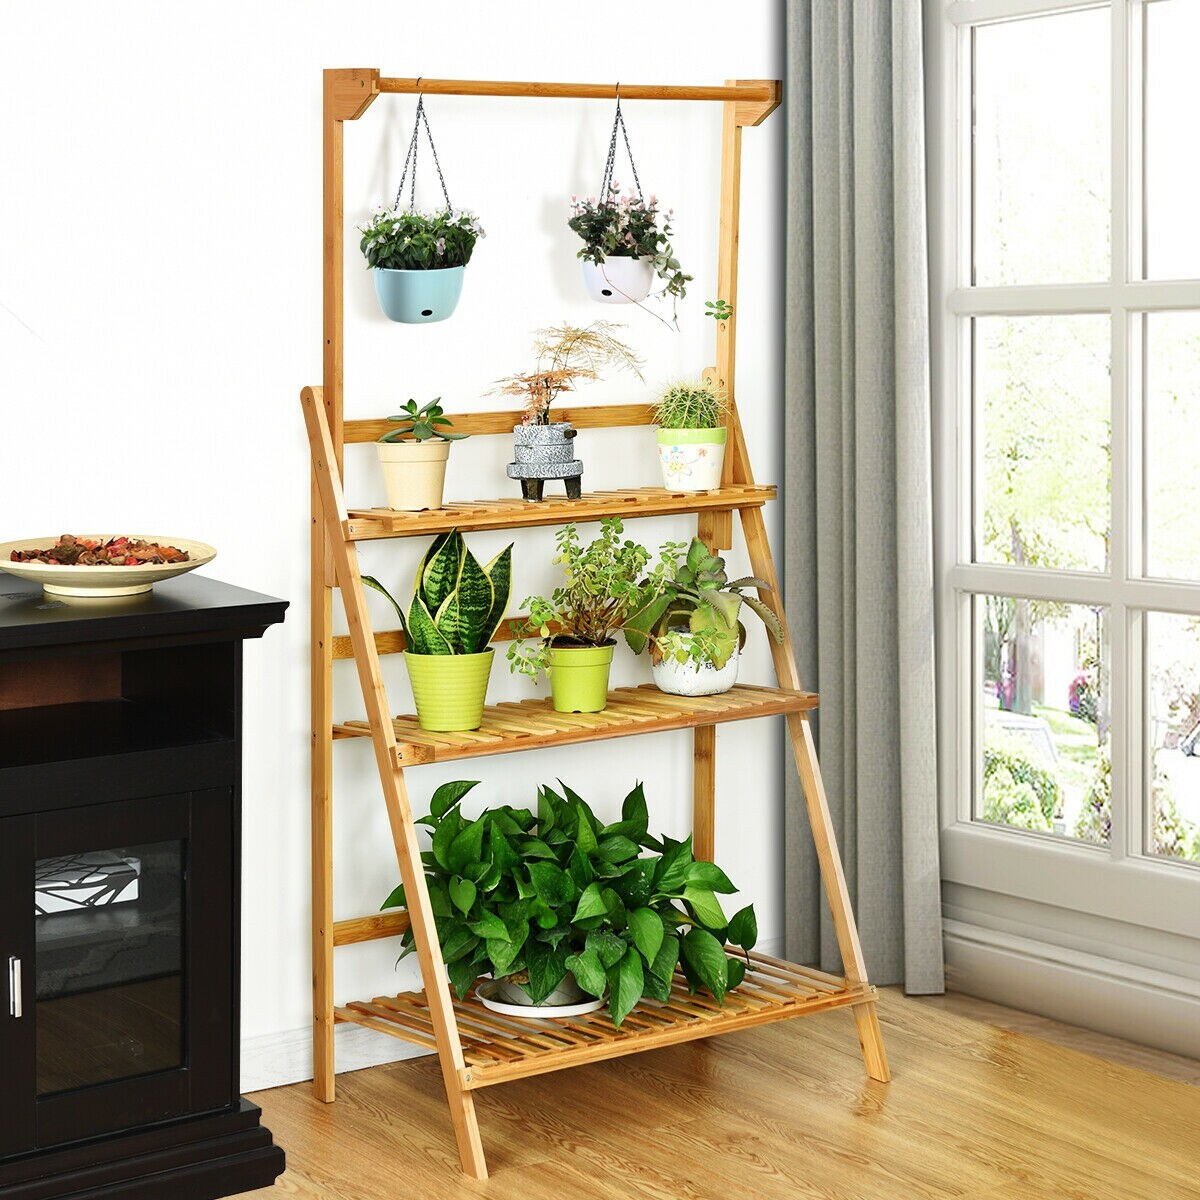 Costway 3 Tier Bamboo Hanging Folding Plant Shelf Stand Flower Pot 27 5 X16 X47 5 56 5 Lxwxh Overstock 27282155